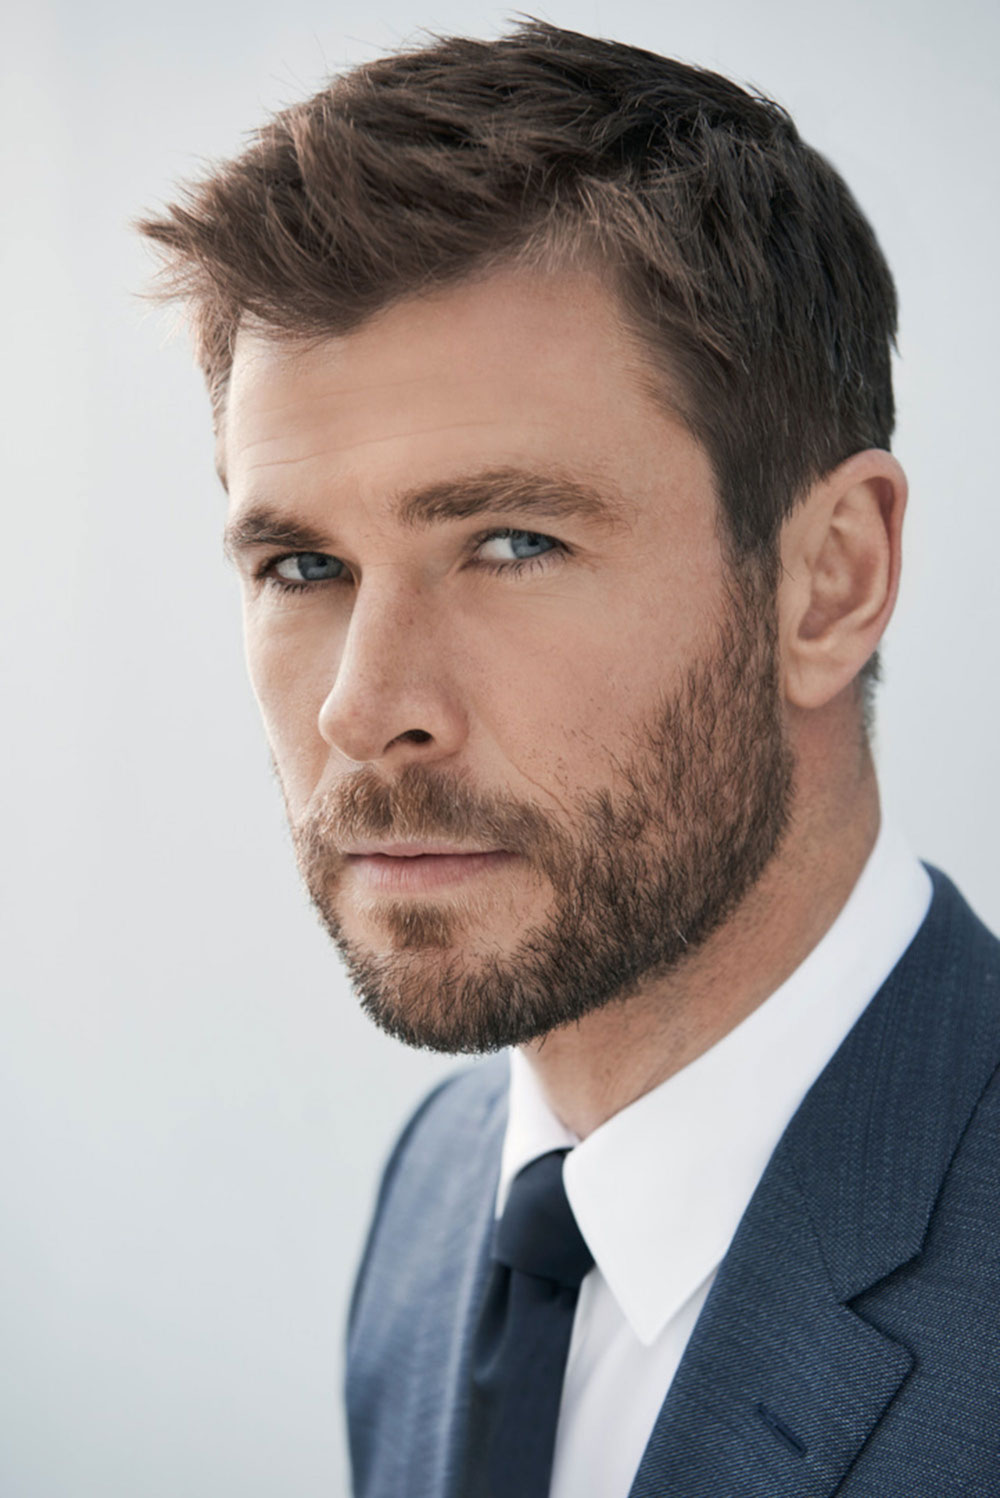 Chris Hemsworth Haircut 2 Men S Haircut Styles